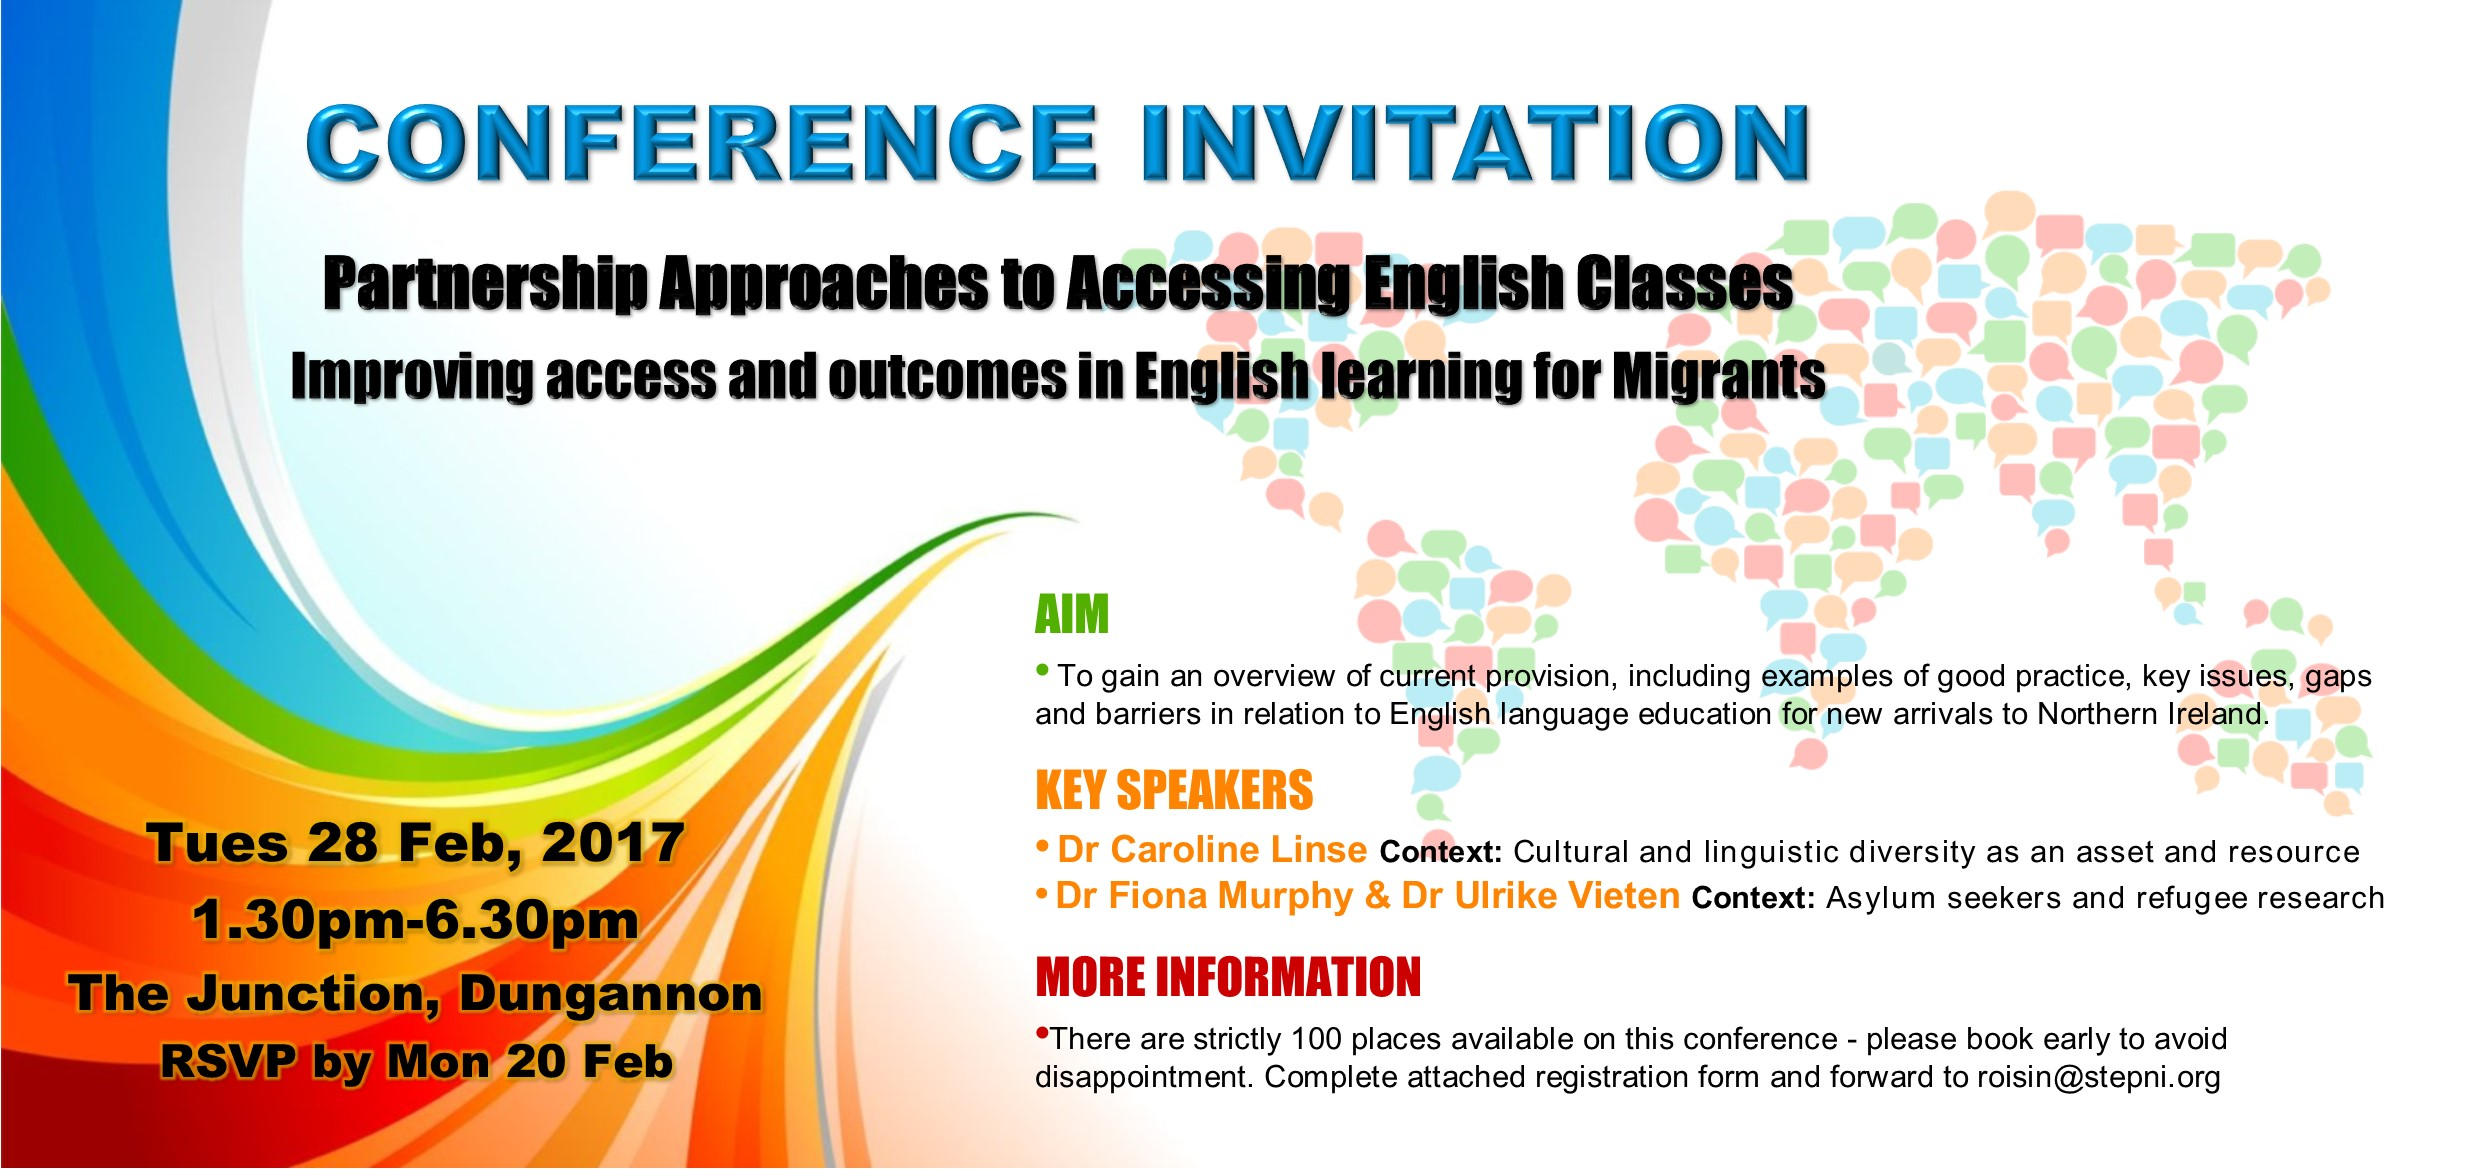 Conference invite partnership approaches to accessing english more information email roisinstepni to request an application form rsvp by mon 20th feb stopboris Image collections